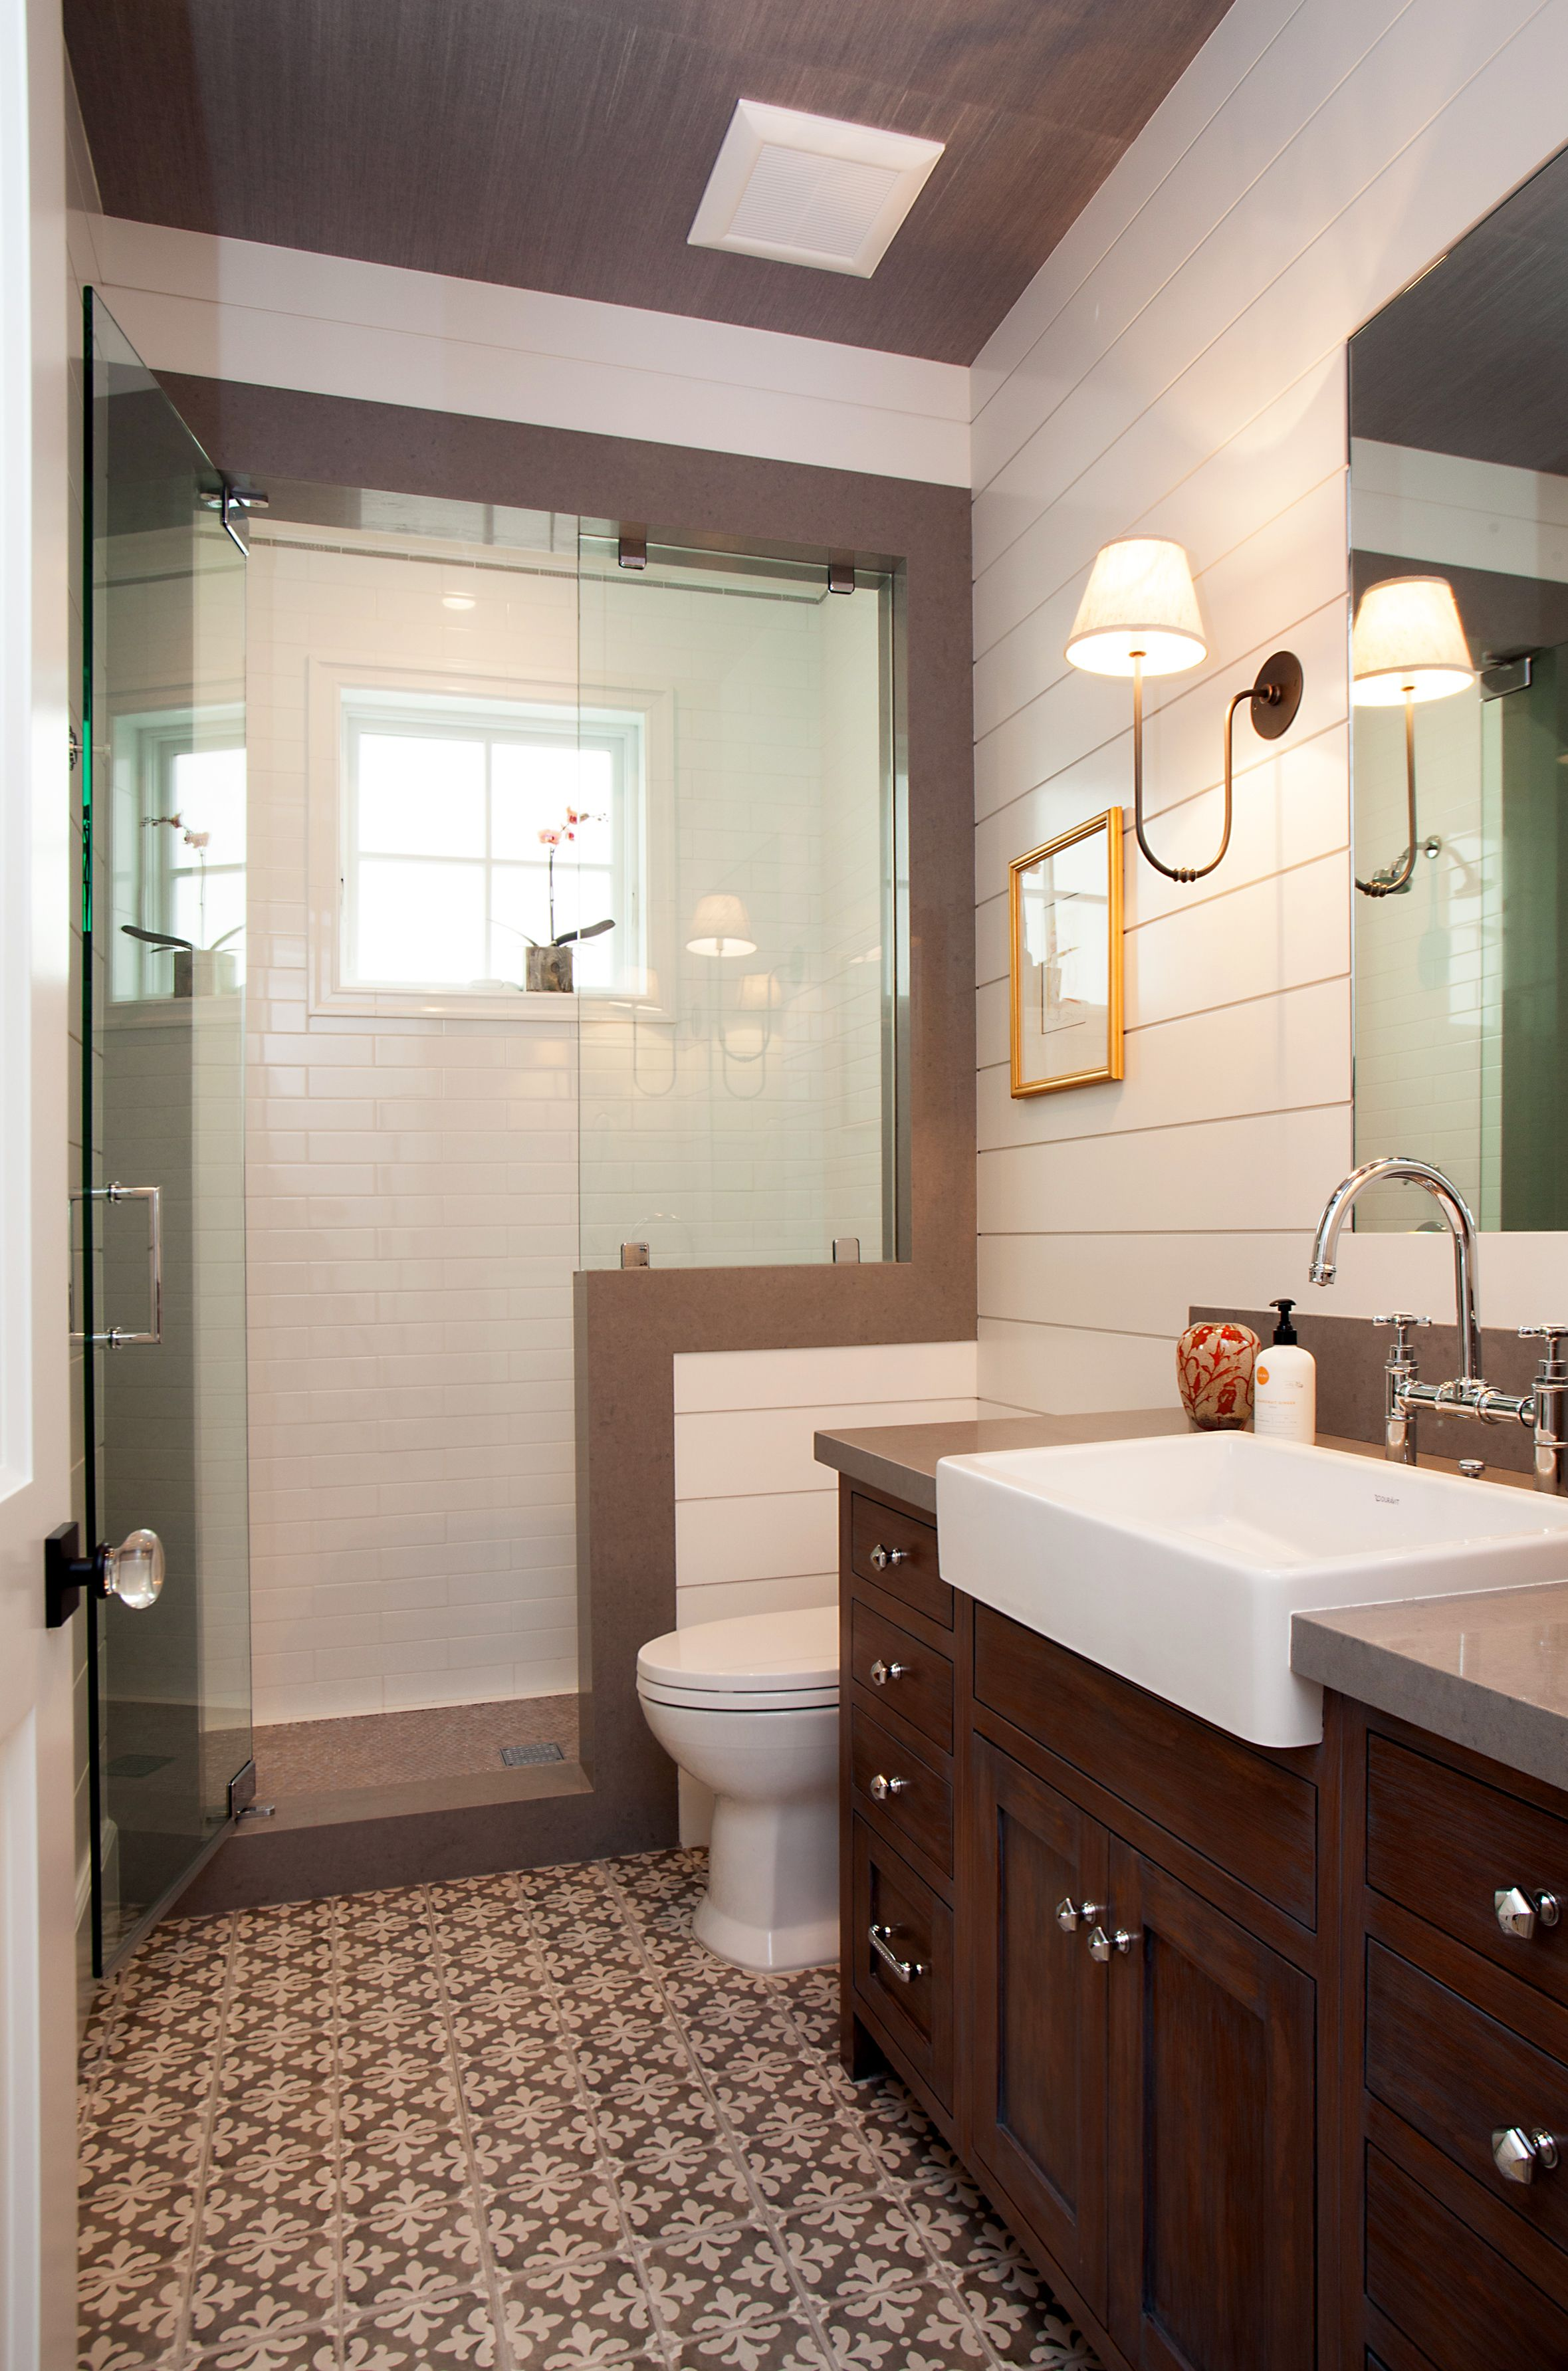 This first floor bathroom brings the style with its gorgeous mix bathroom inspiration doublecrazyfo Images